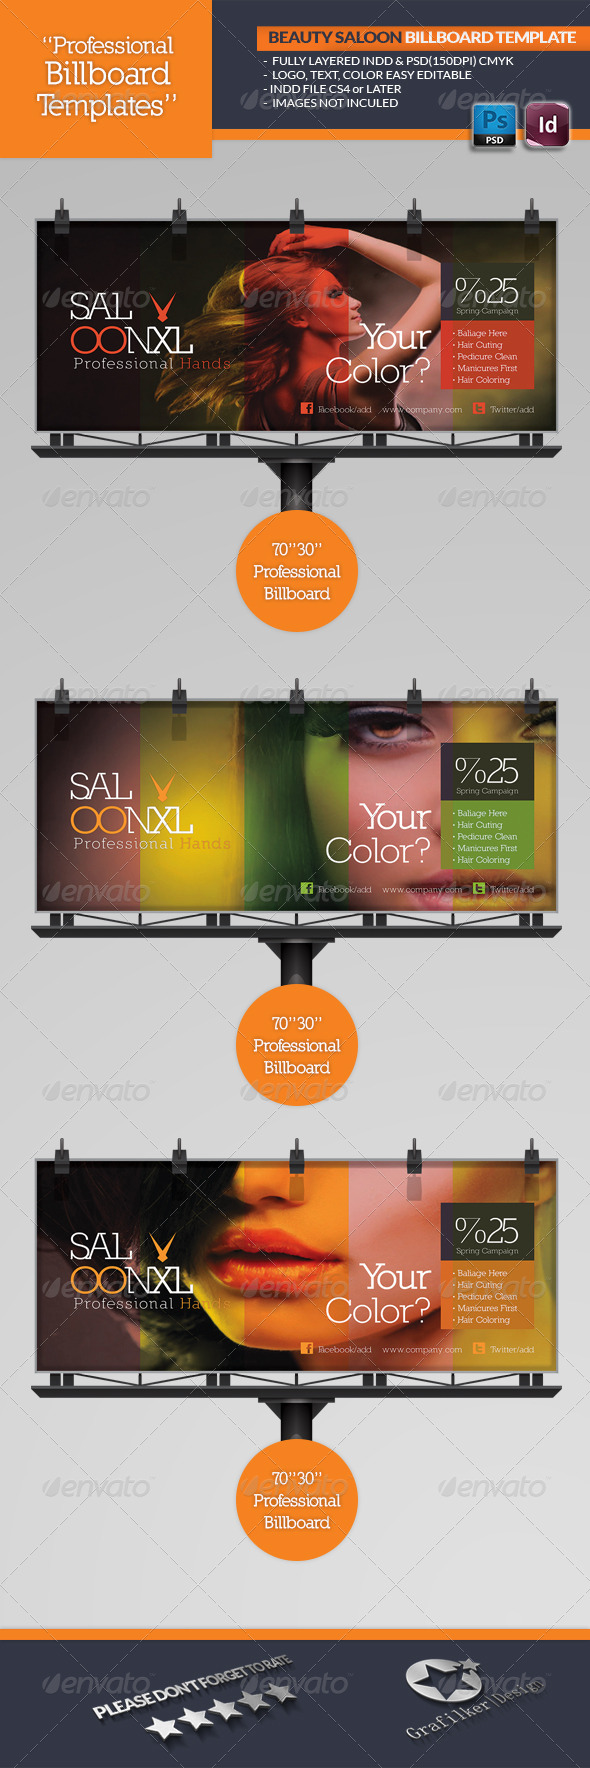 Beauty Saloon Billboard Template - Signage Print Templates